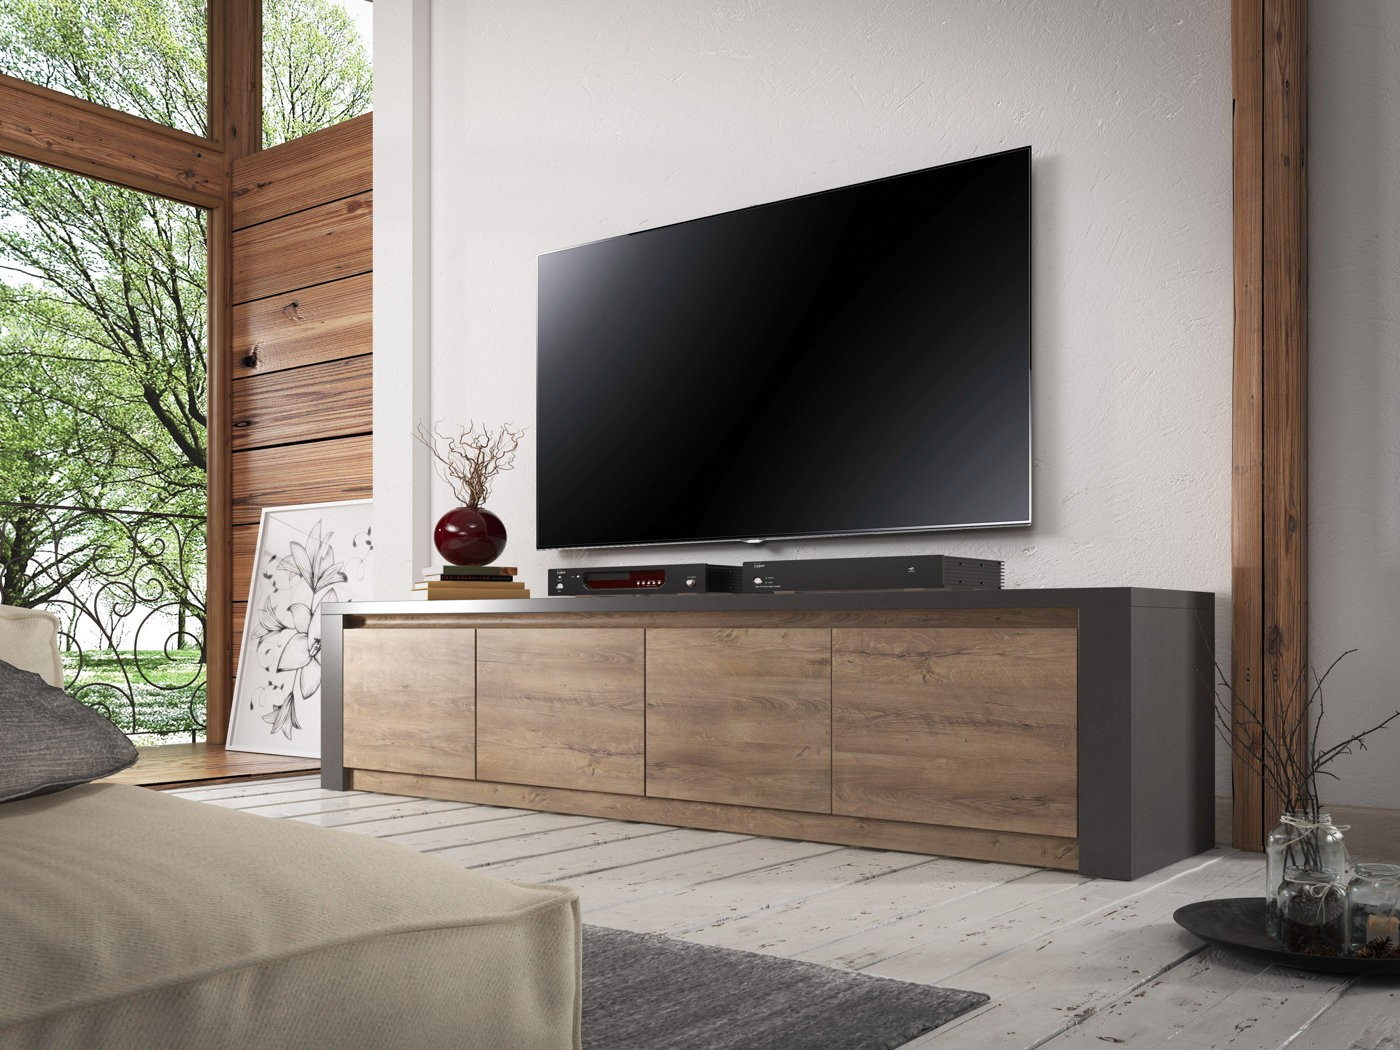 tv meubel monaco eiken grijs 4 vakken 170 cm meubella. Black Bedroom Furniture Sets. Home Design Ideas